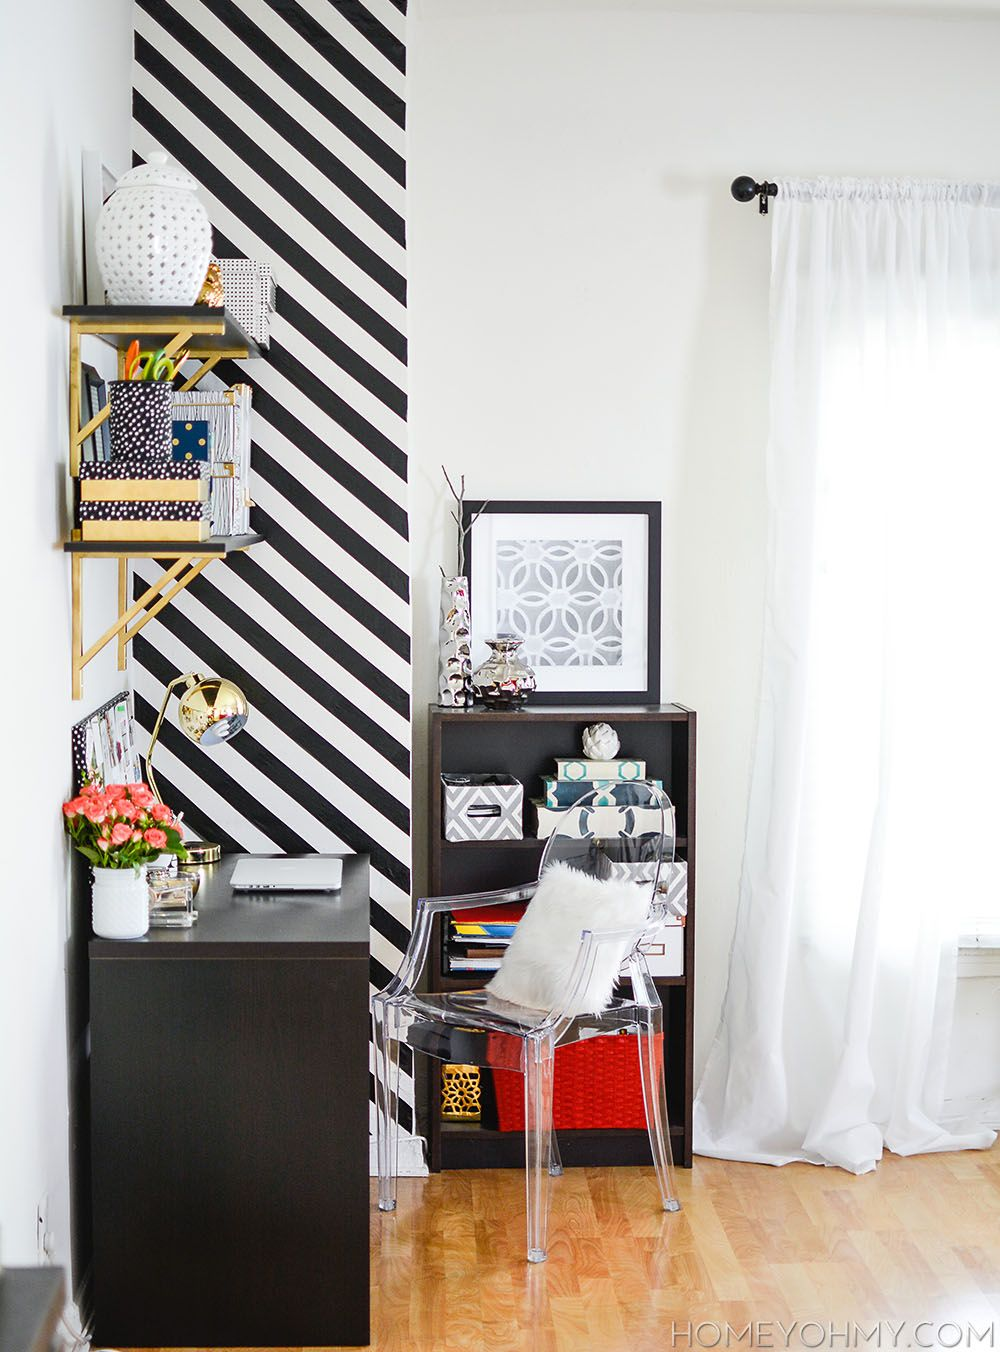 How To Create A Striped Accent Wall Without Paint Striped Accent Walls Striped Walls Diy Accent Wall